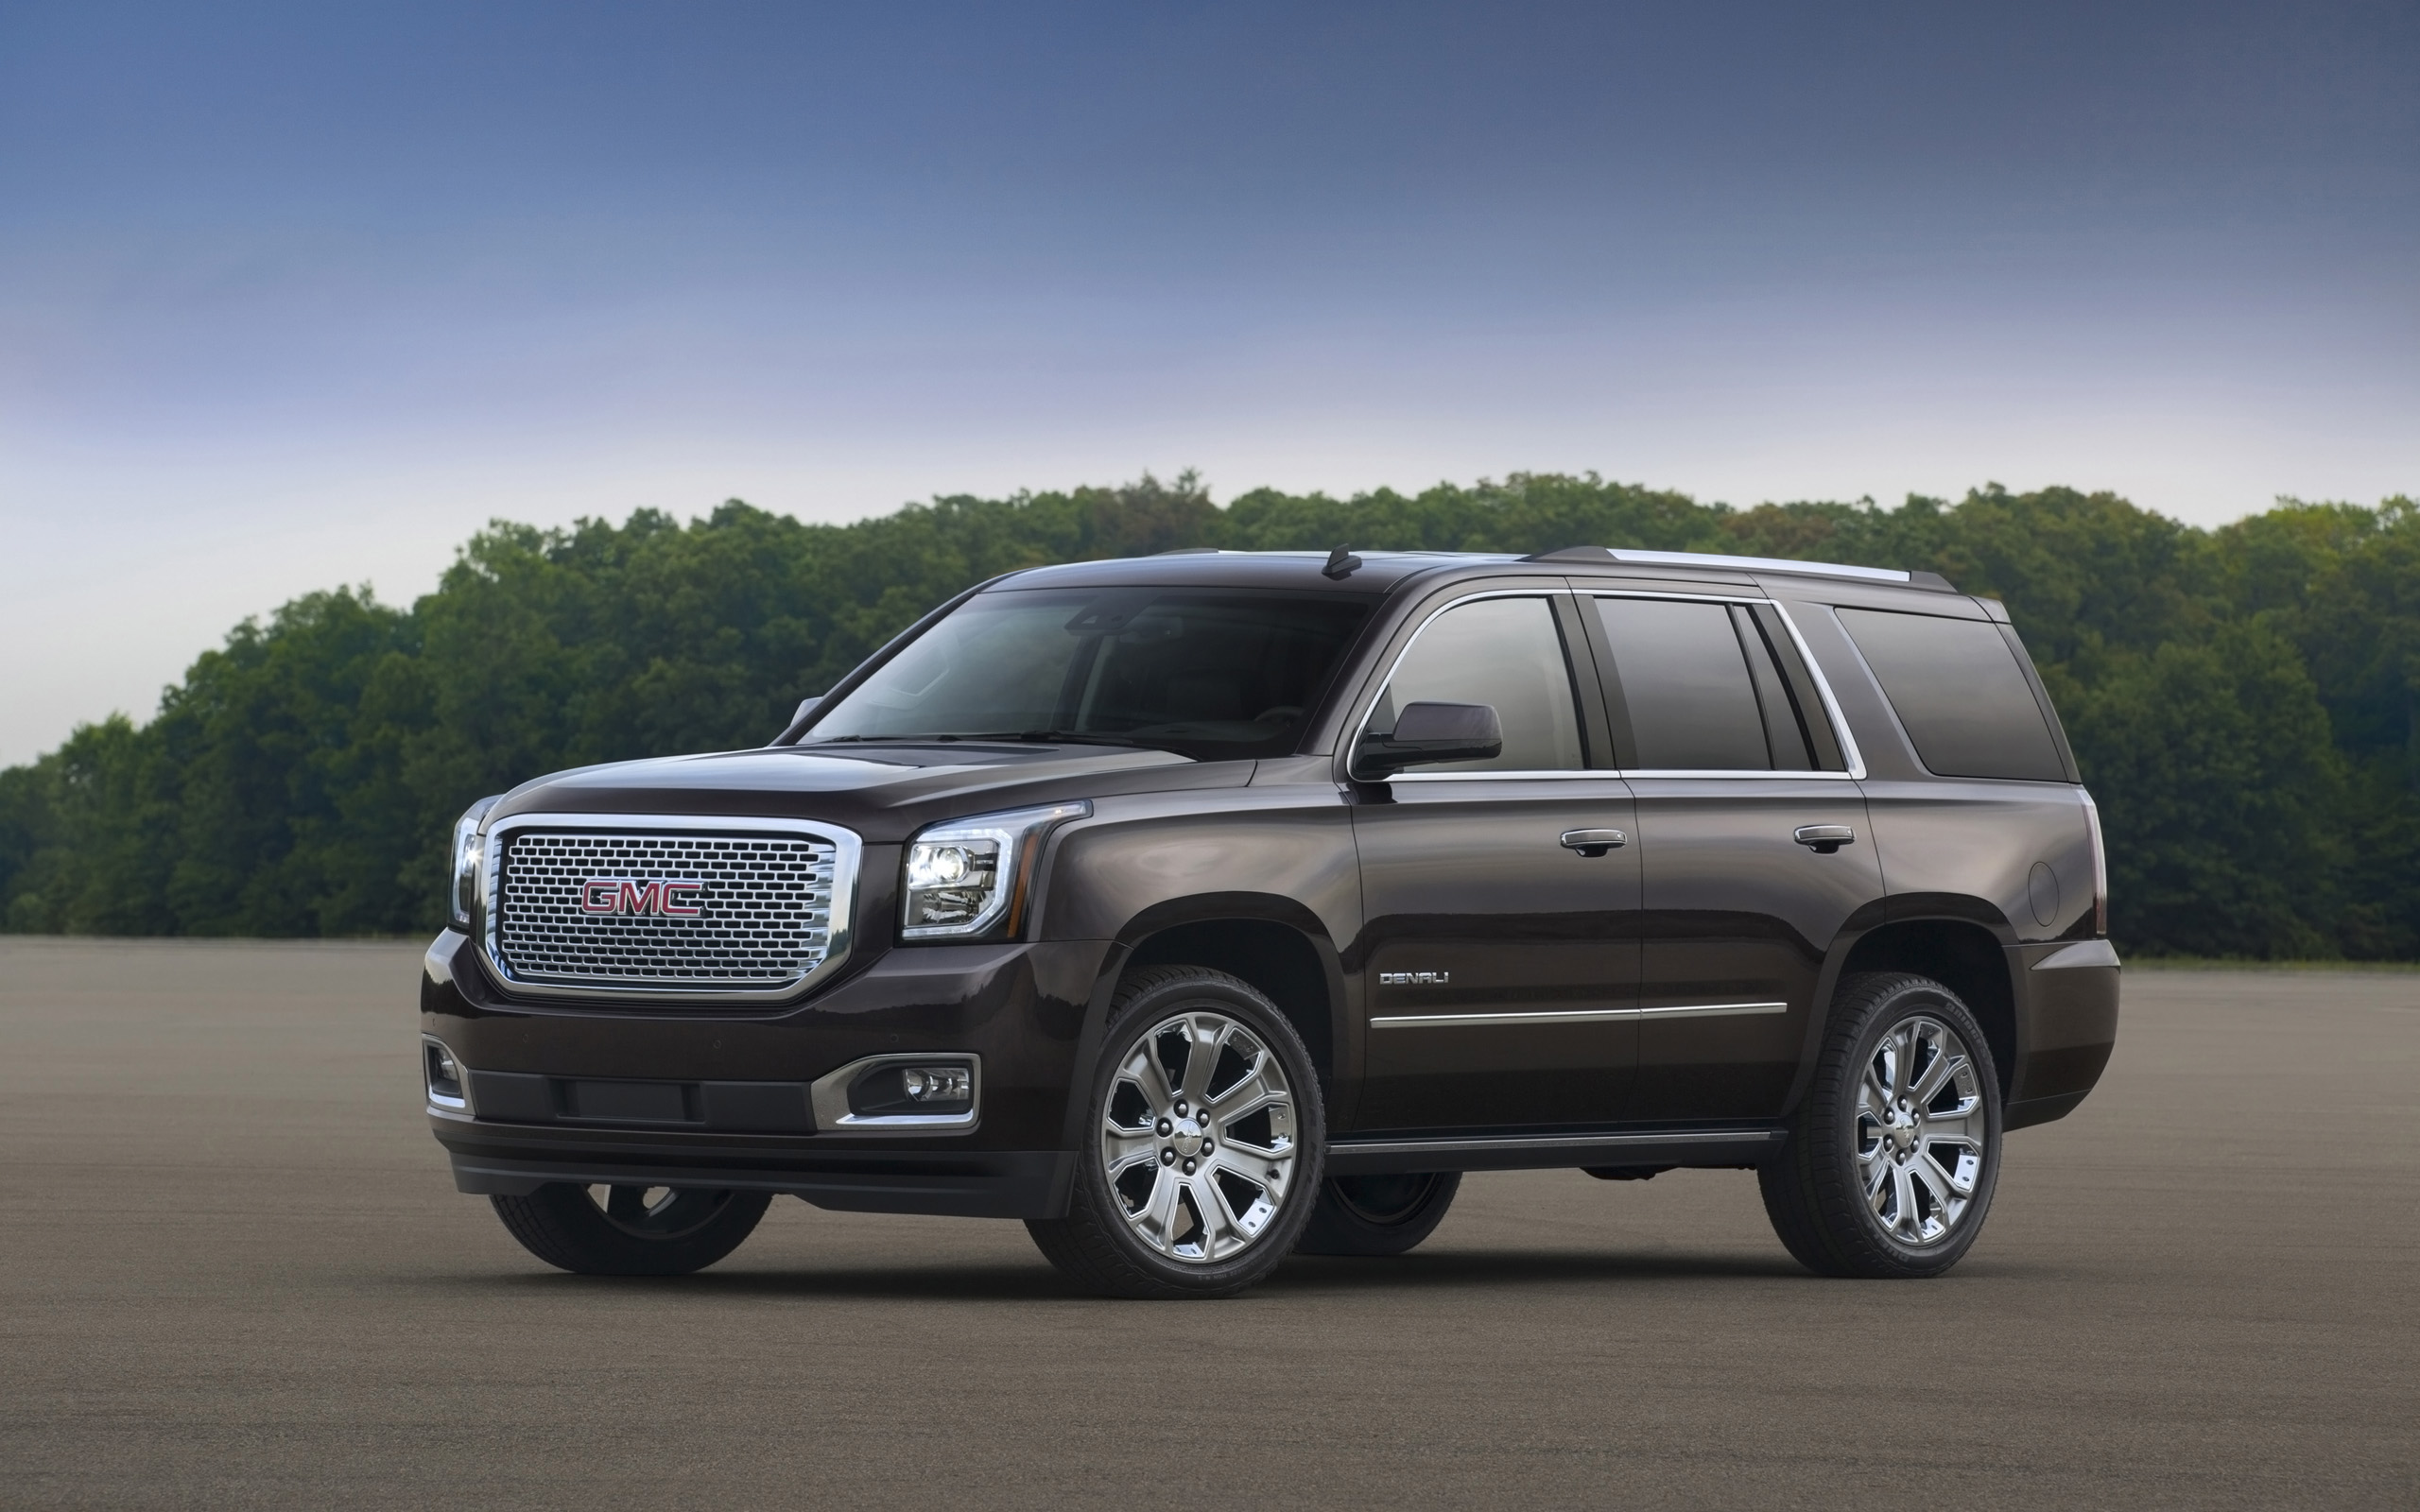 2015 gmc yukon xl information and photos momentcar. Black Bedroom Furniture Sets. Home Design Ideas